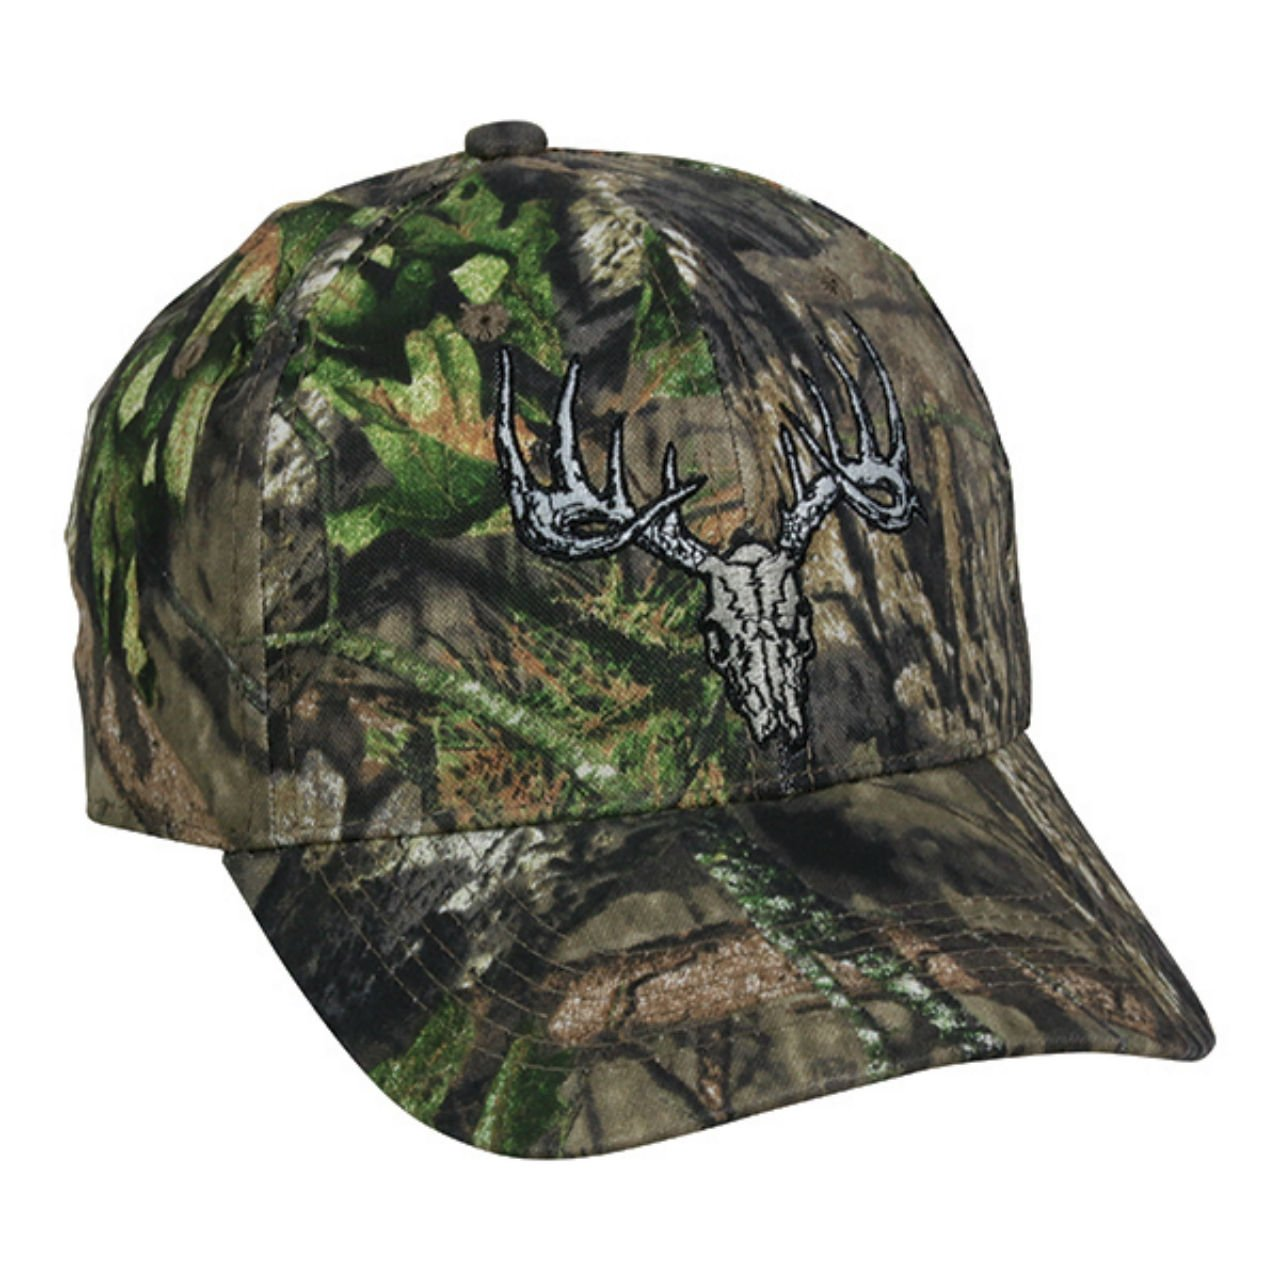 f90530434d0 Amazon.com   Outdoor Cap Mossy Oak Country Deer Skull Camo Hunting Hat    Sports   Outdoors